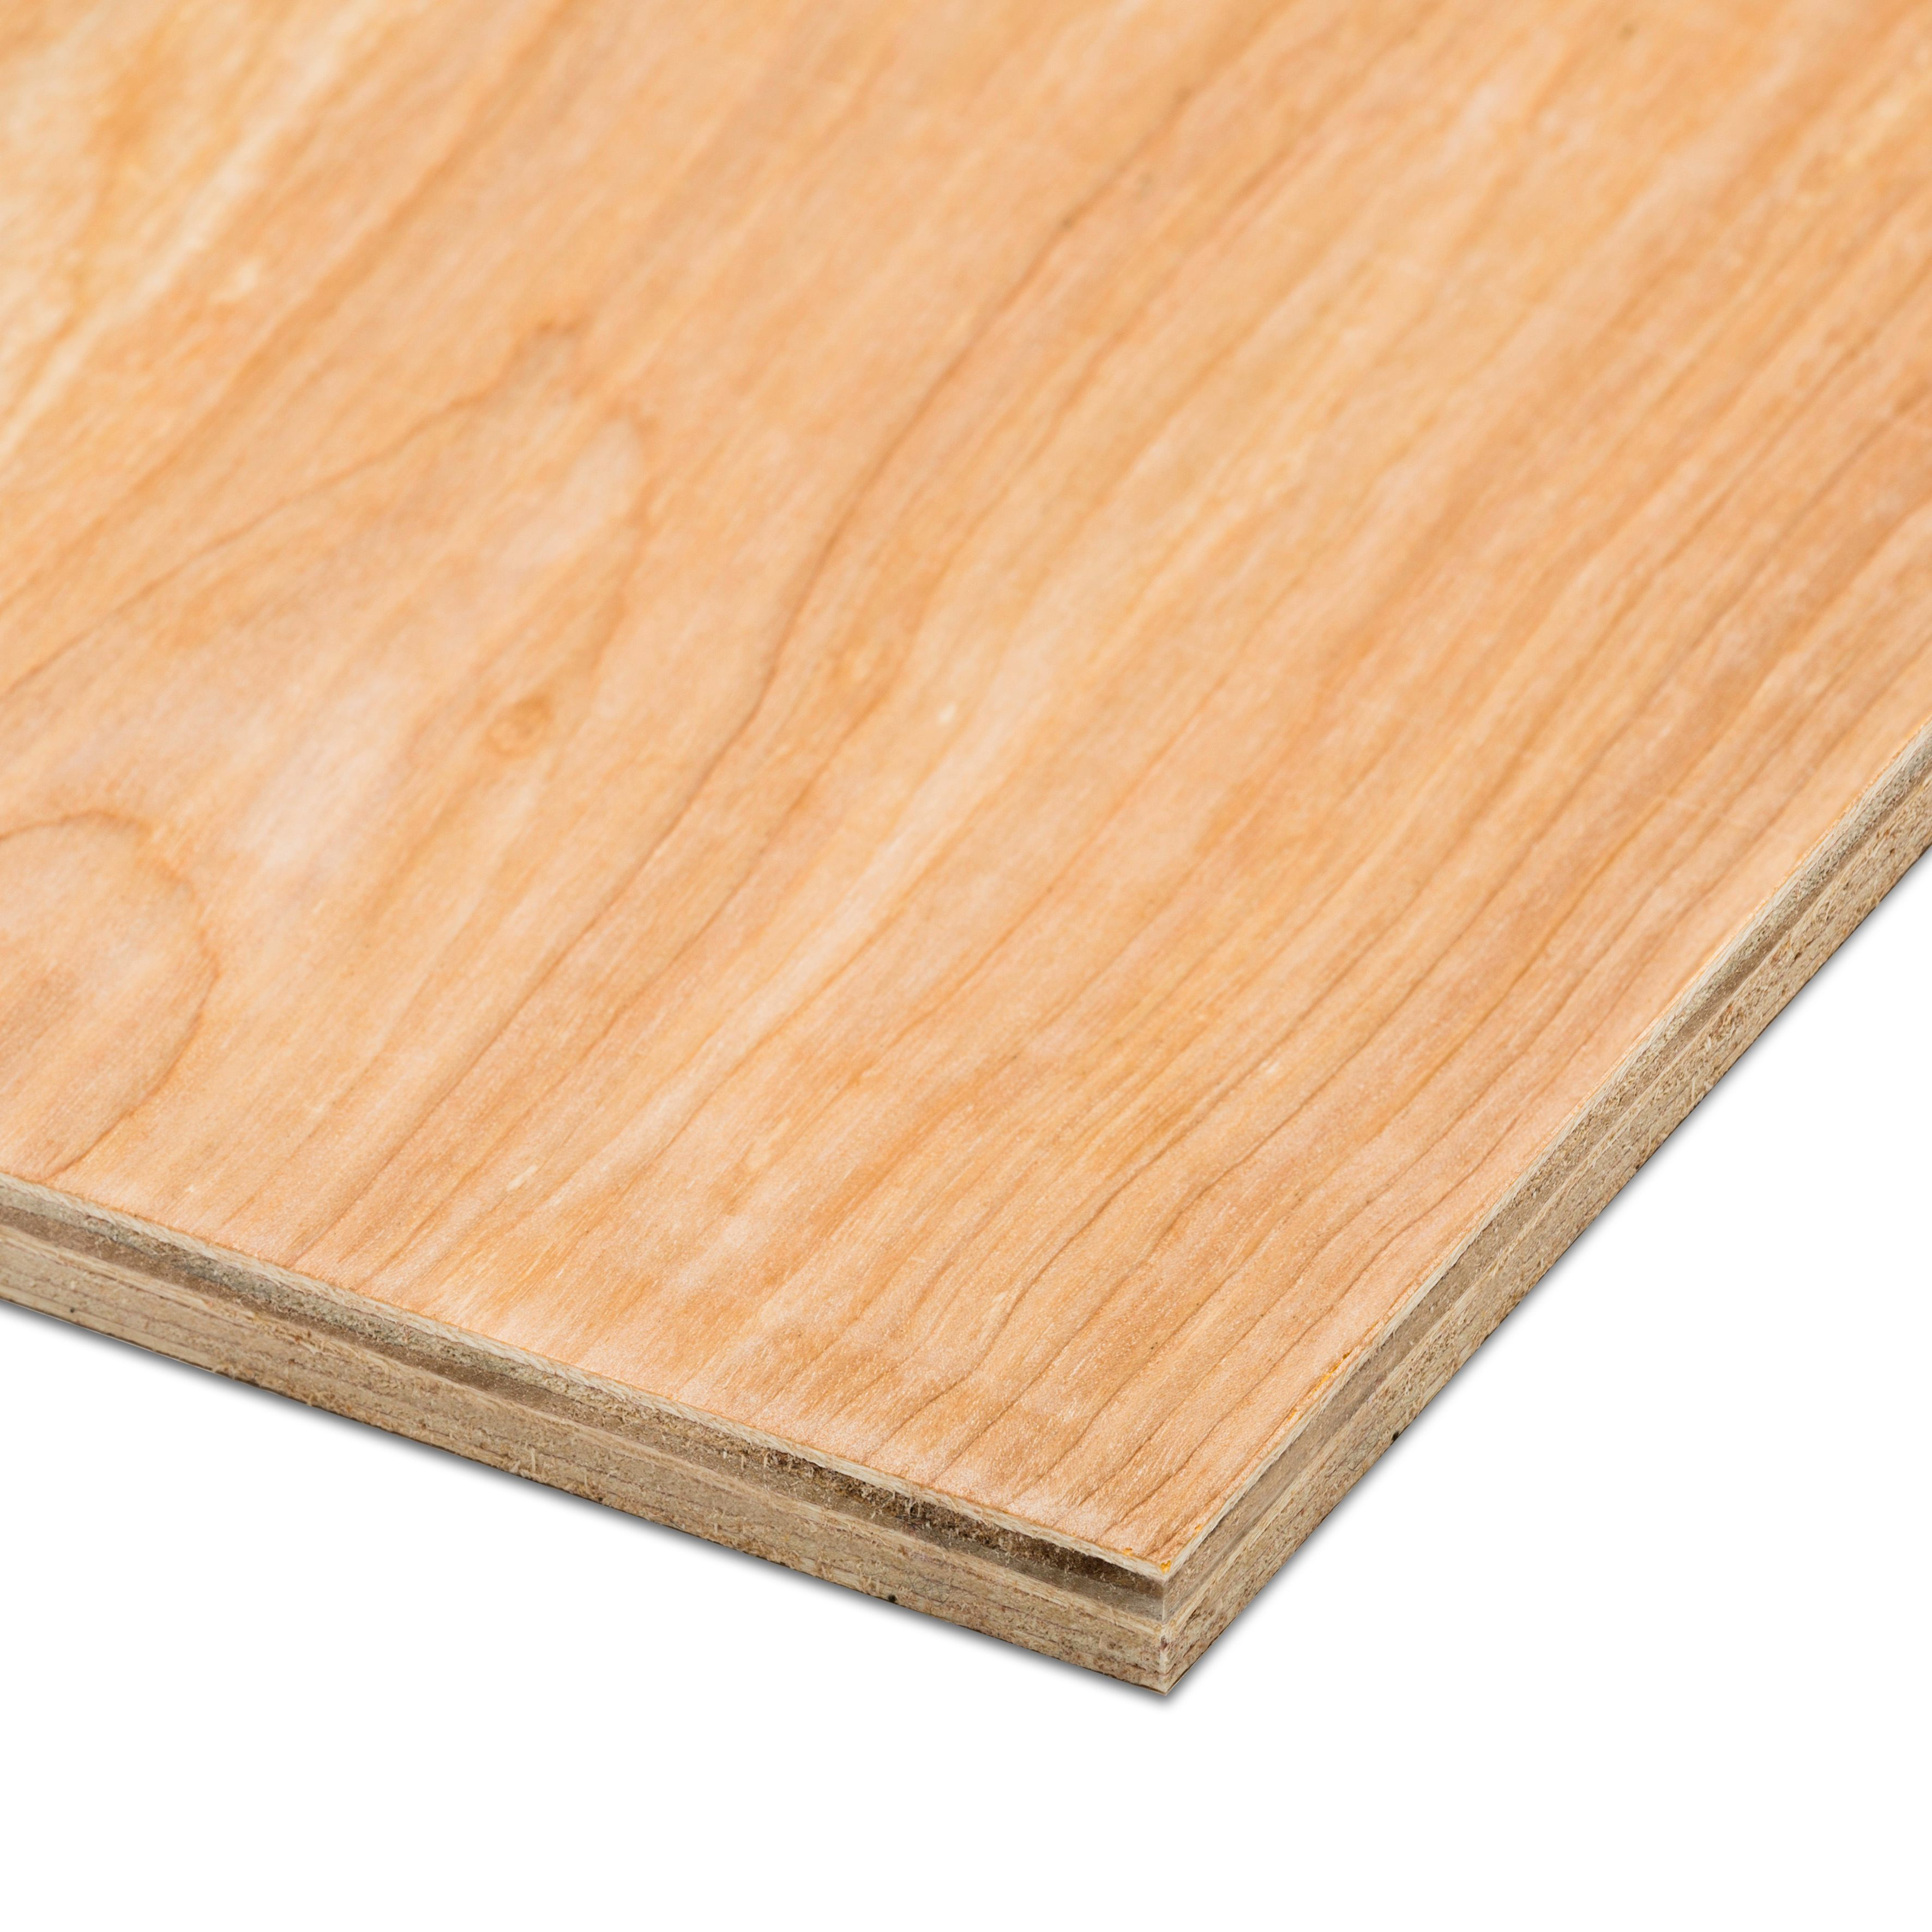 Hardwood plywood th mm w l departments